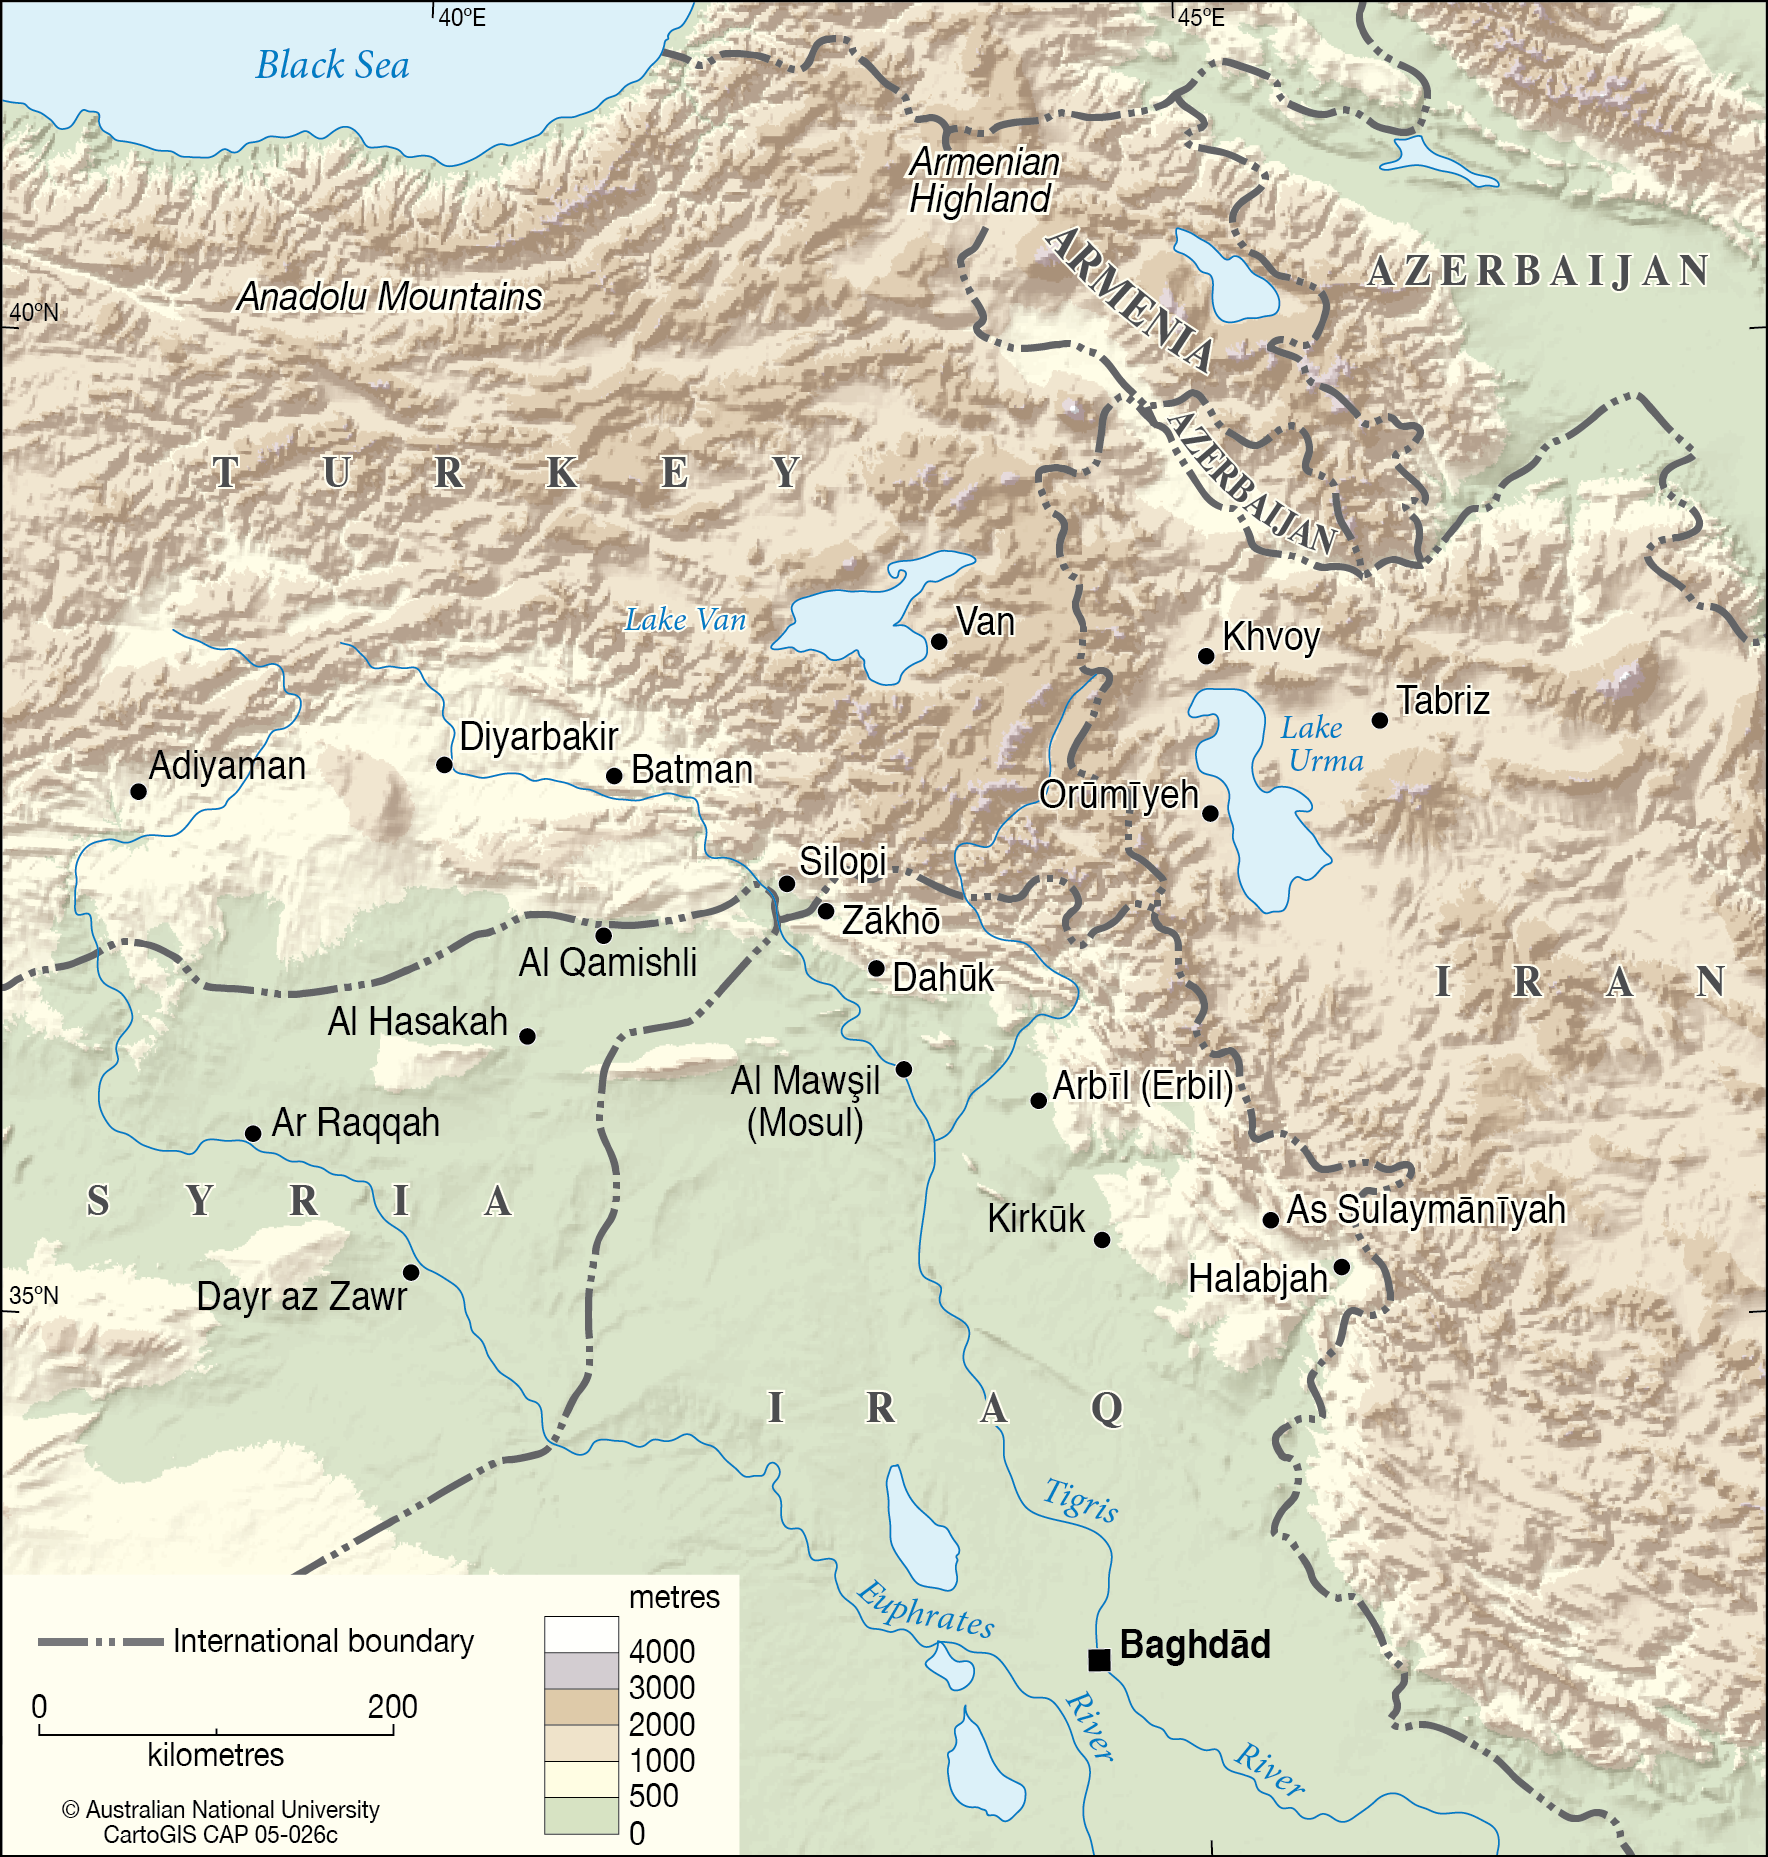 Black Sea To Baghdad CartoGIS Services Maps Online ANU - Baghdad map world